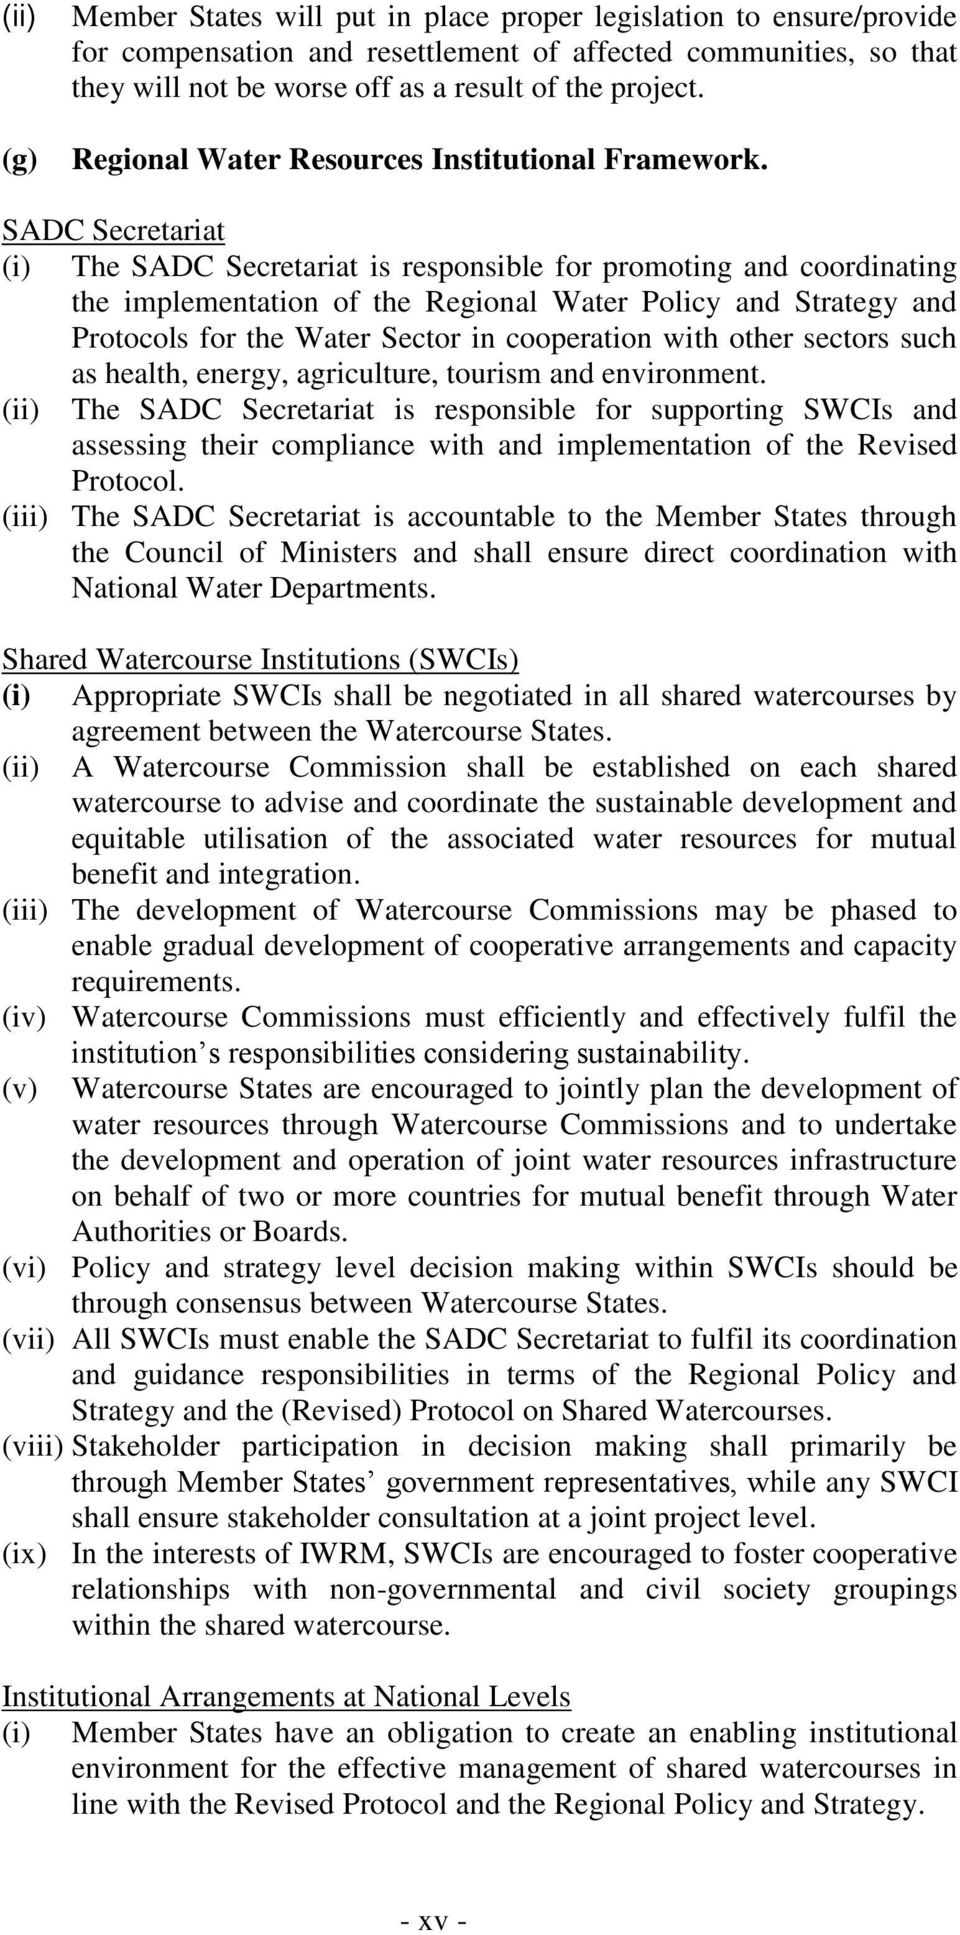 SADC Secretariat (i) The SADC Secretariat is responsible for promoting and coordinating the implementation of the Regional Water Policy and Strategy and Protocols for the Water Sector in cooperation